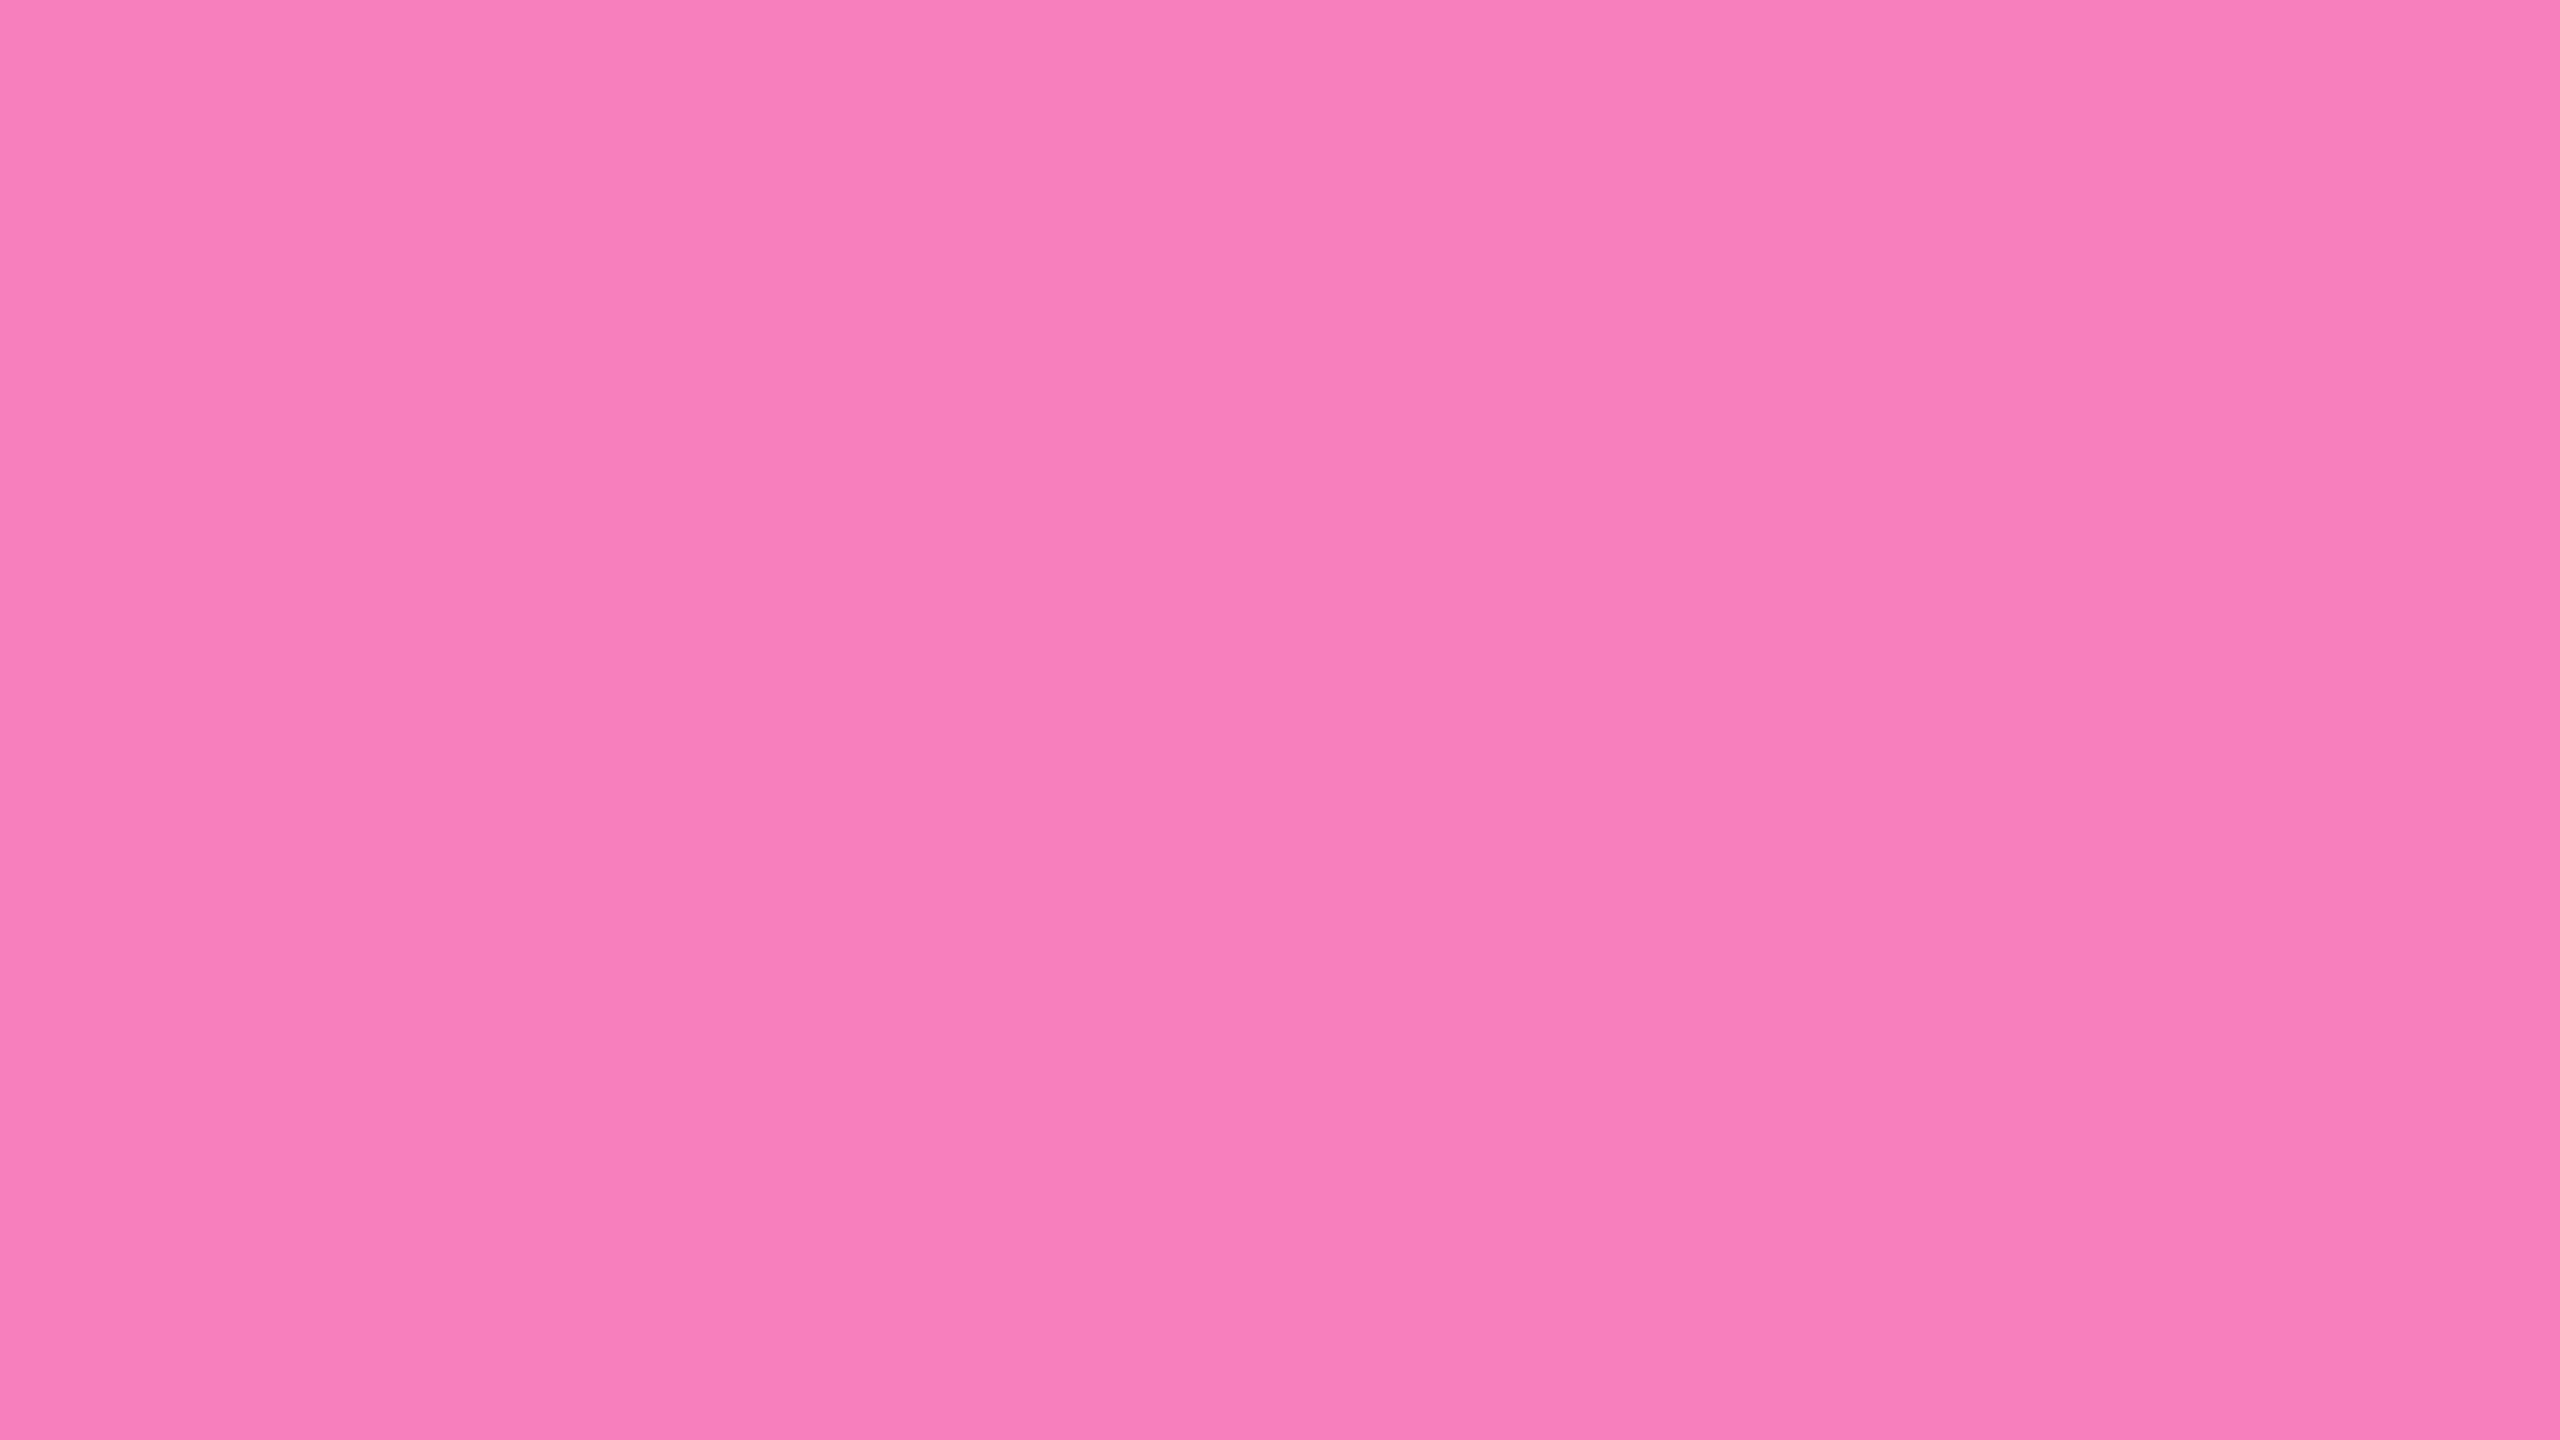 2560x1440 Persian Pink Solid Color Background